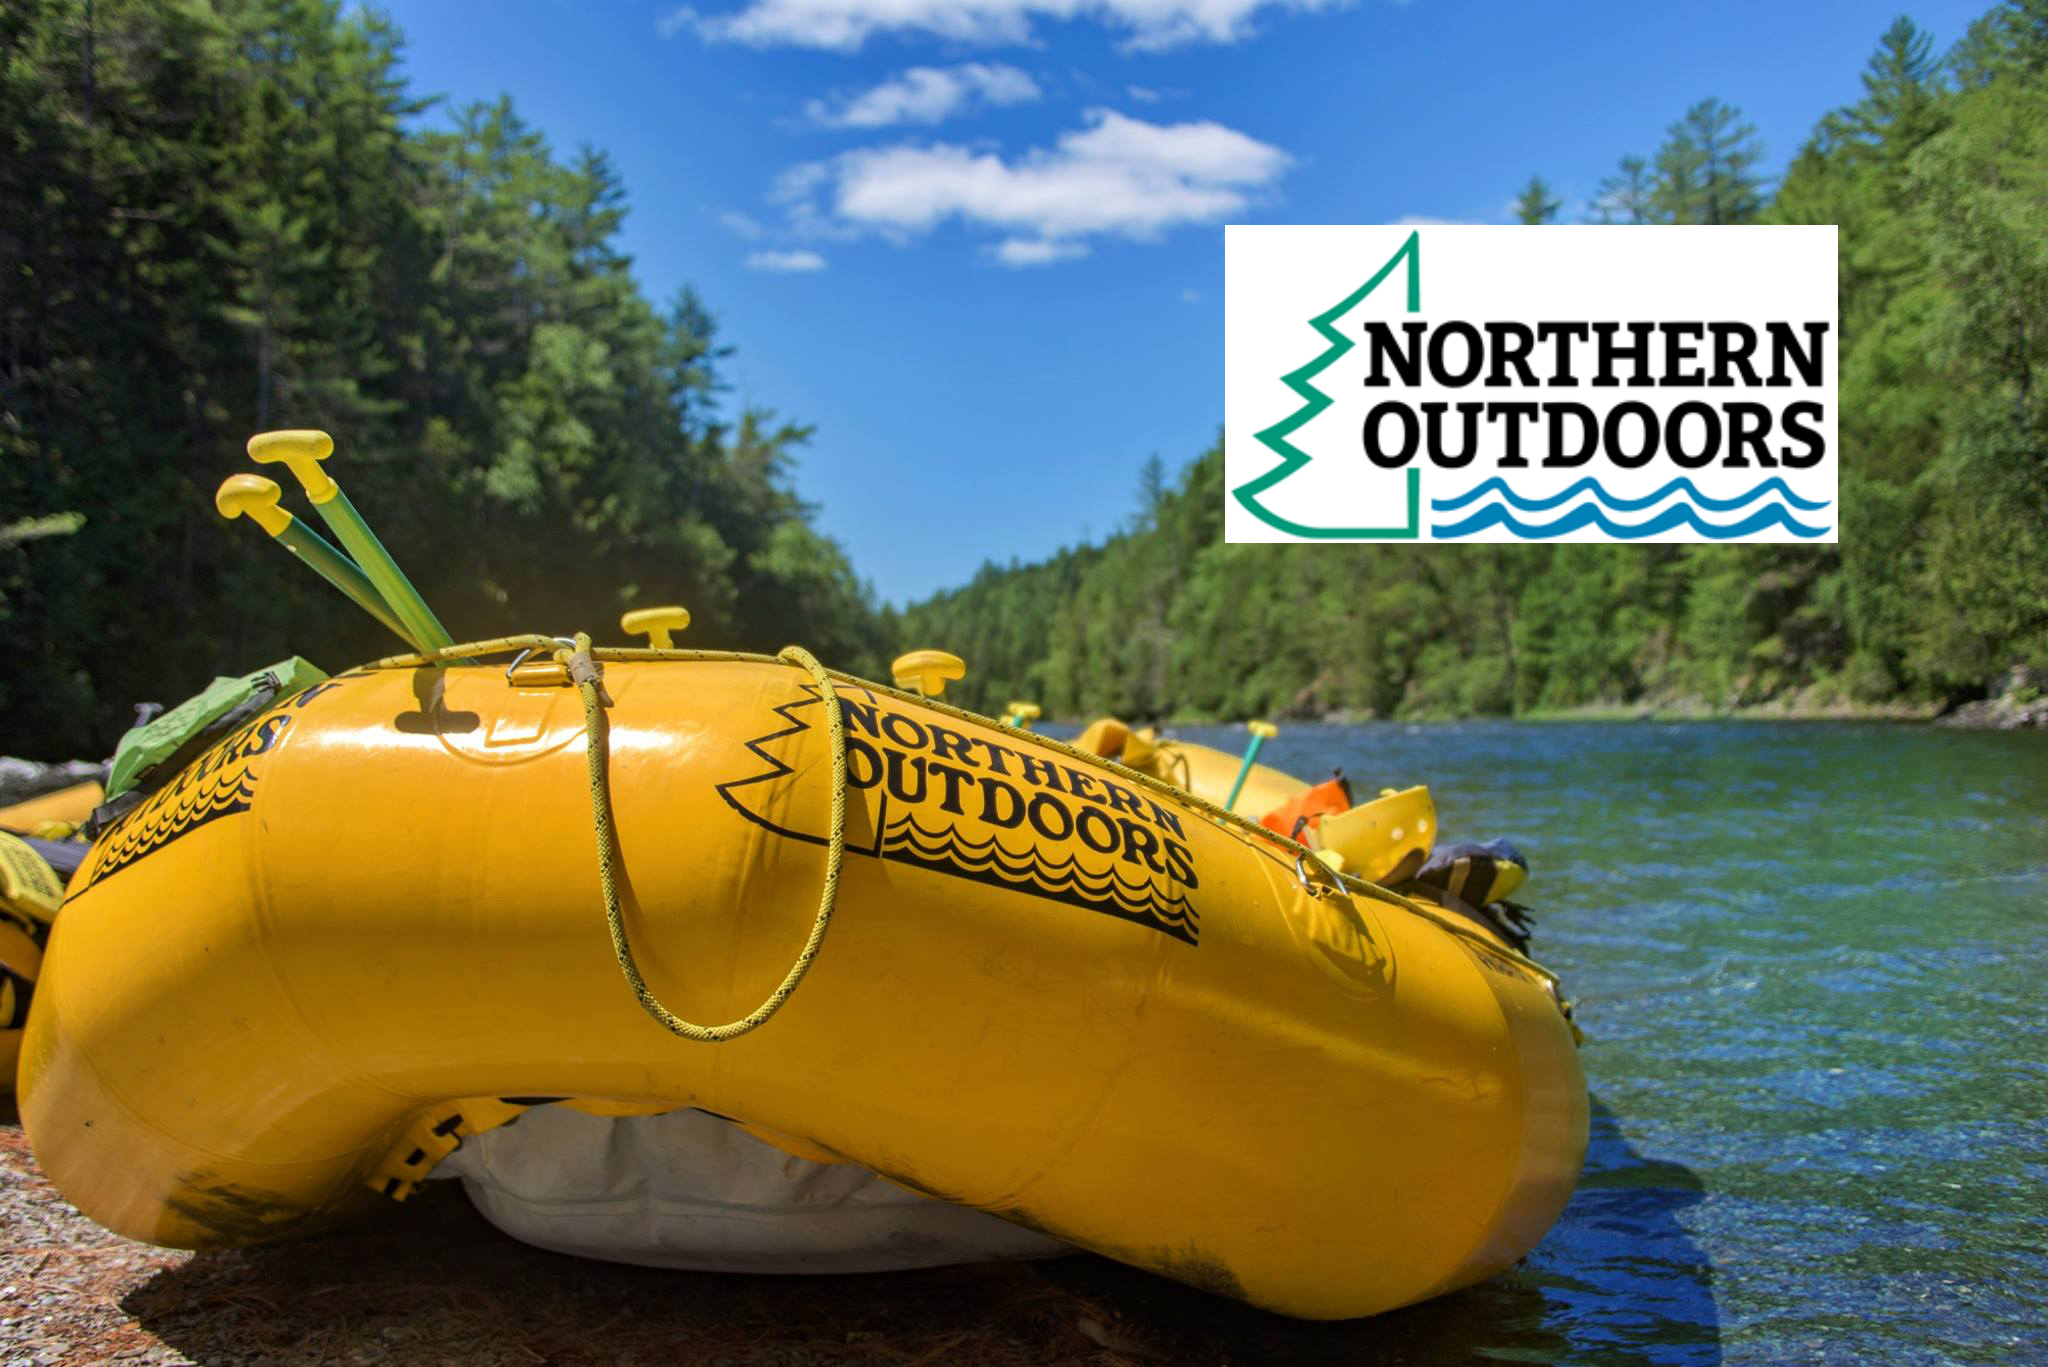 Rafting Trip - An adventure for two! Splashing through class V rapids, spotting moose and eagles in the woods, a gourmet lunch grilled on a riverside beach, waterfalls, rocky gorges, skilled Maine Guides… Join us for an unforgettable river adventure!Location: MaineRetail: $228Donated by: Northern Outdoors